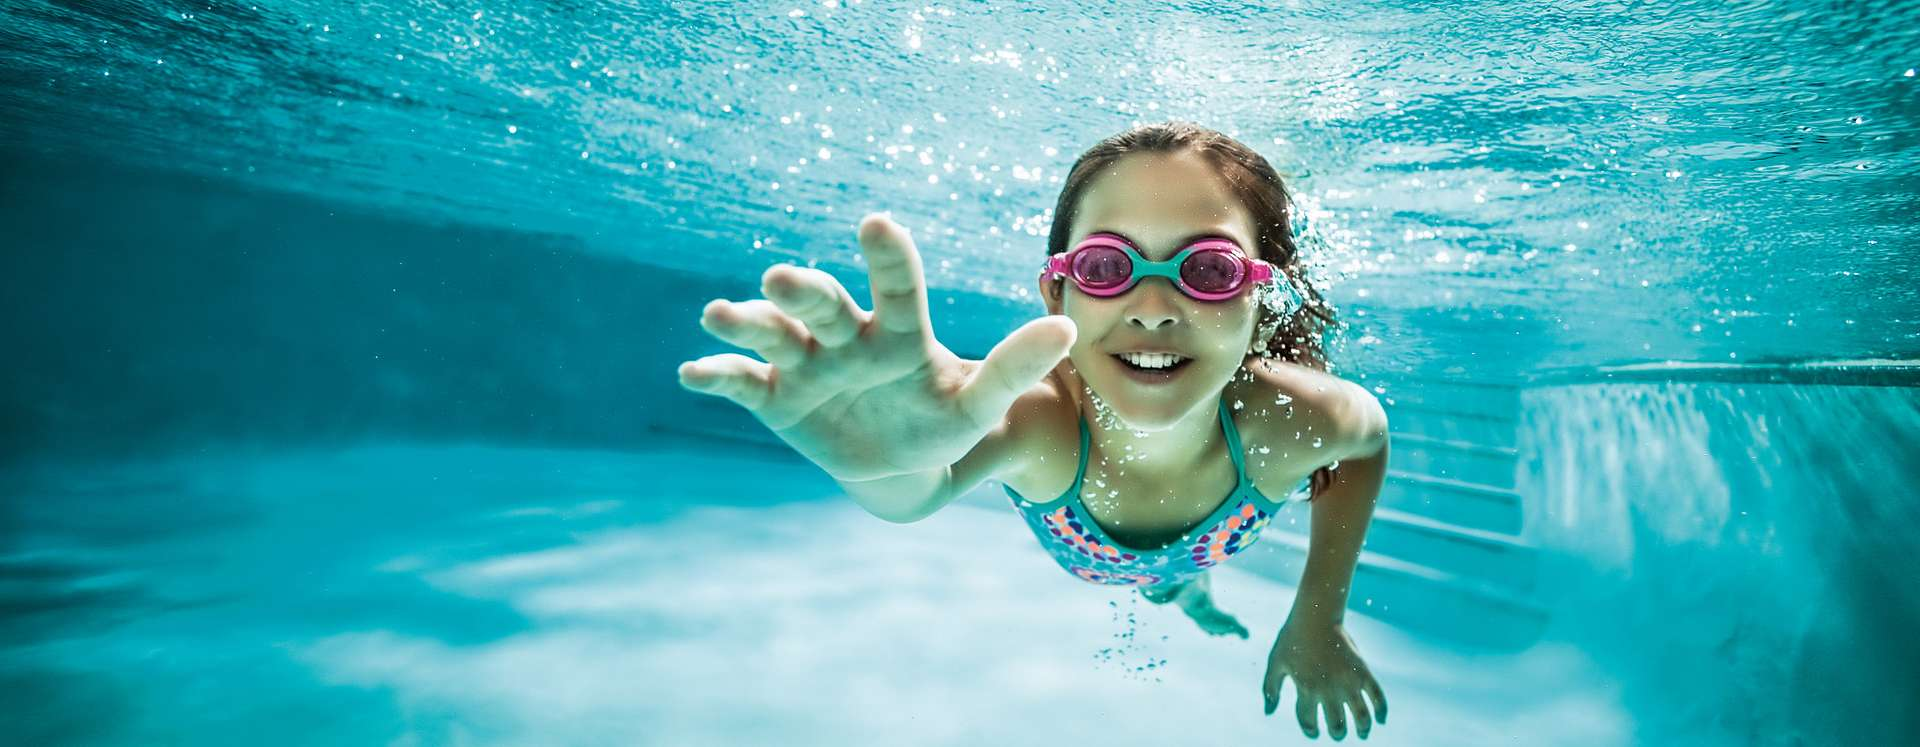 Girl wearing pink goggles and swimming underwater in a pool.